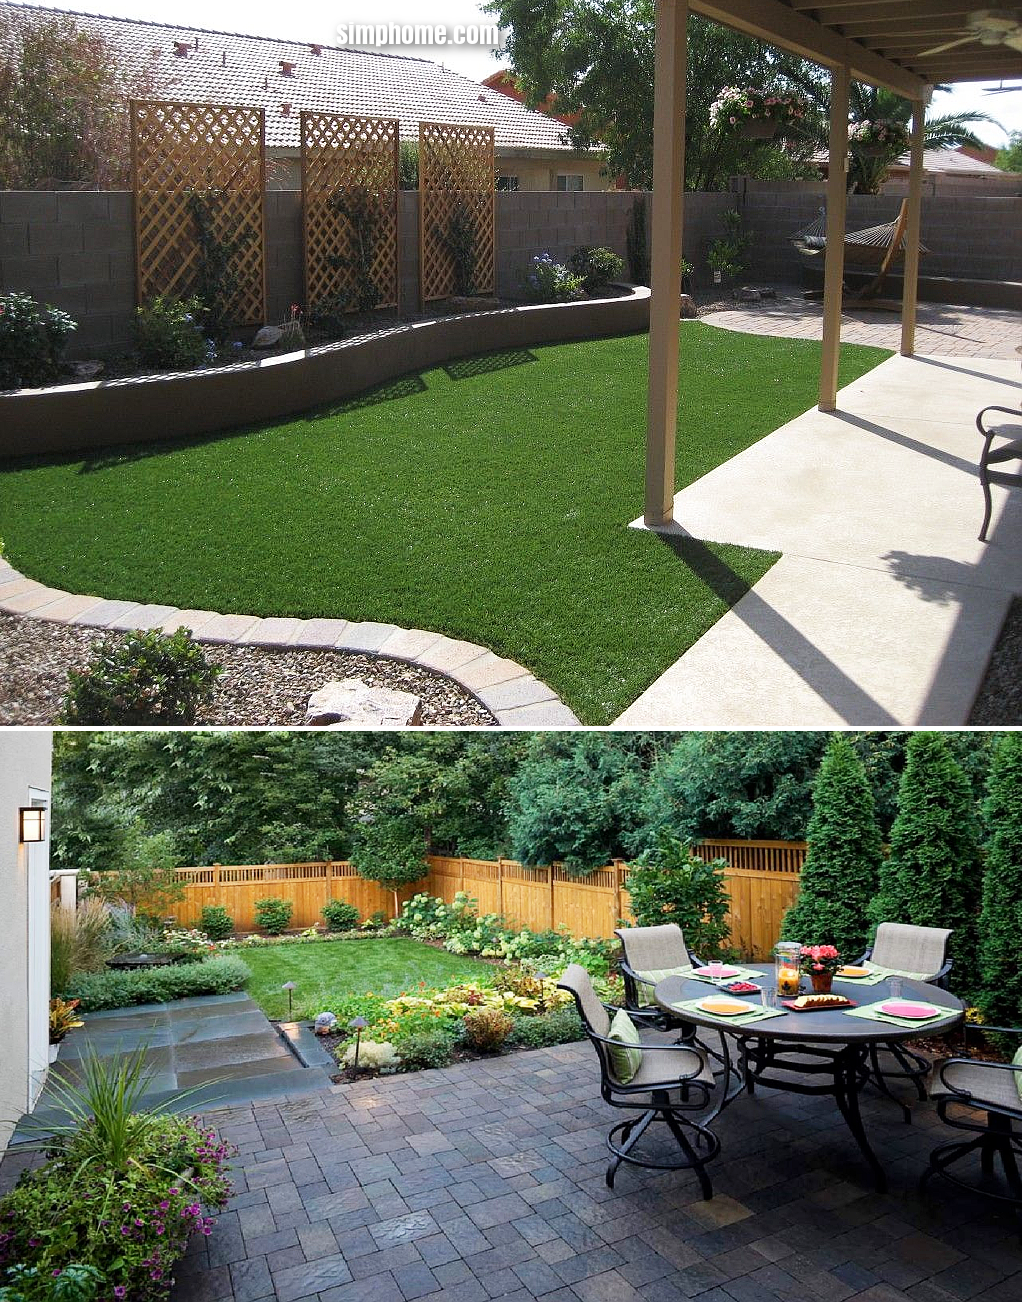 SIMPHOME.COM .11 Genius Tricks of How to Build Small Backyard Landscape Ideas On A Budget.4